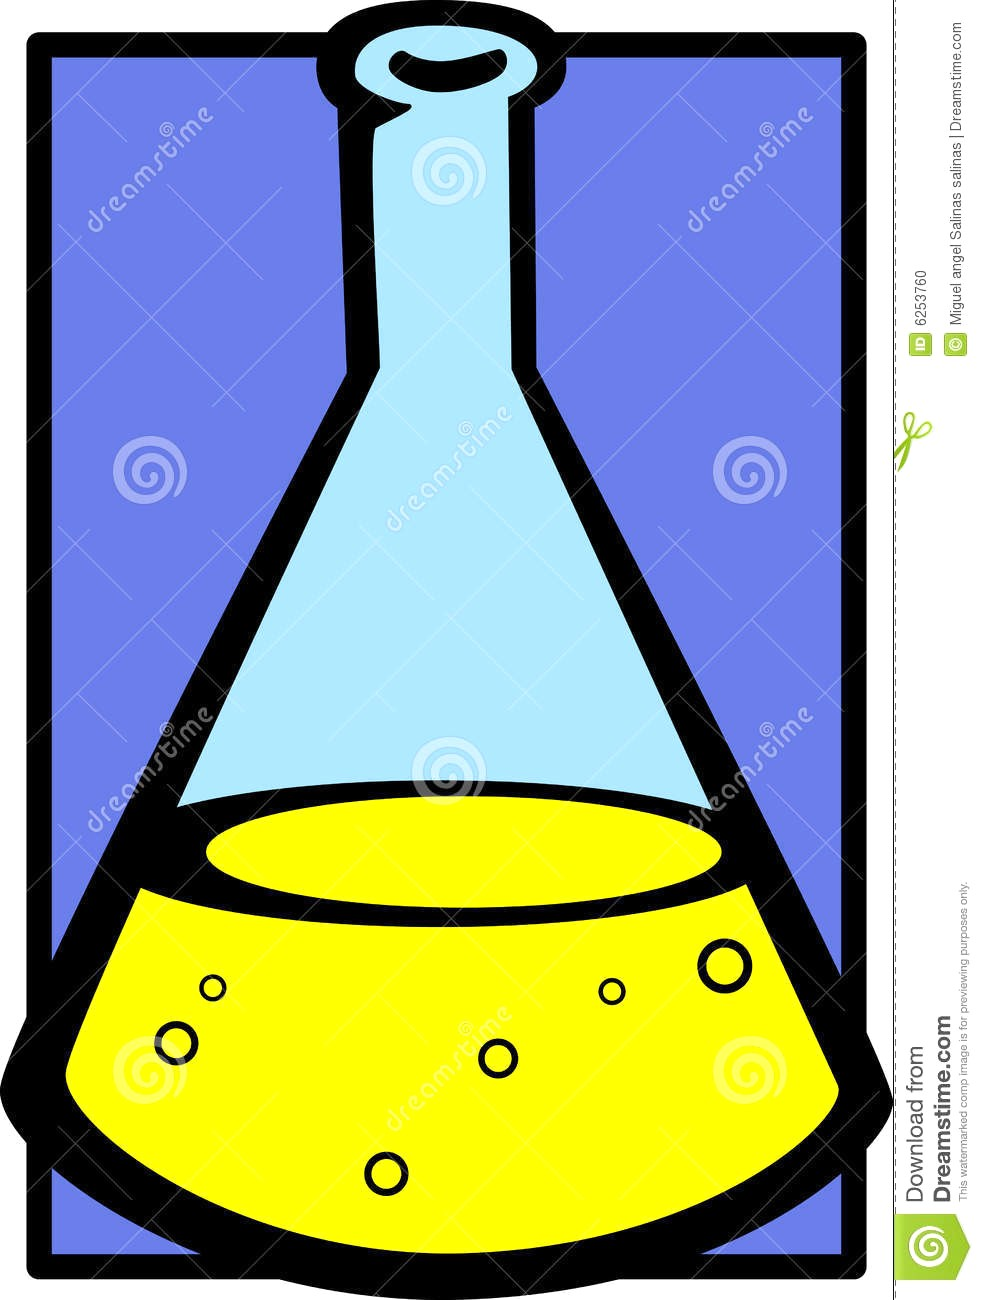 983x1300 Chemistry Beaker Clipart Flask Vector Illustration 6253760 12